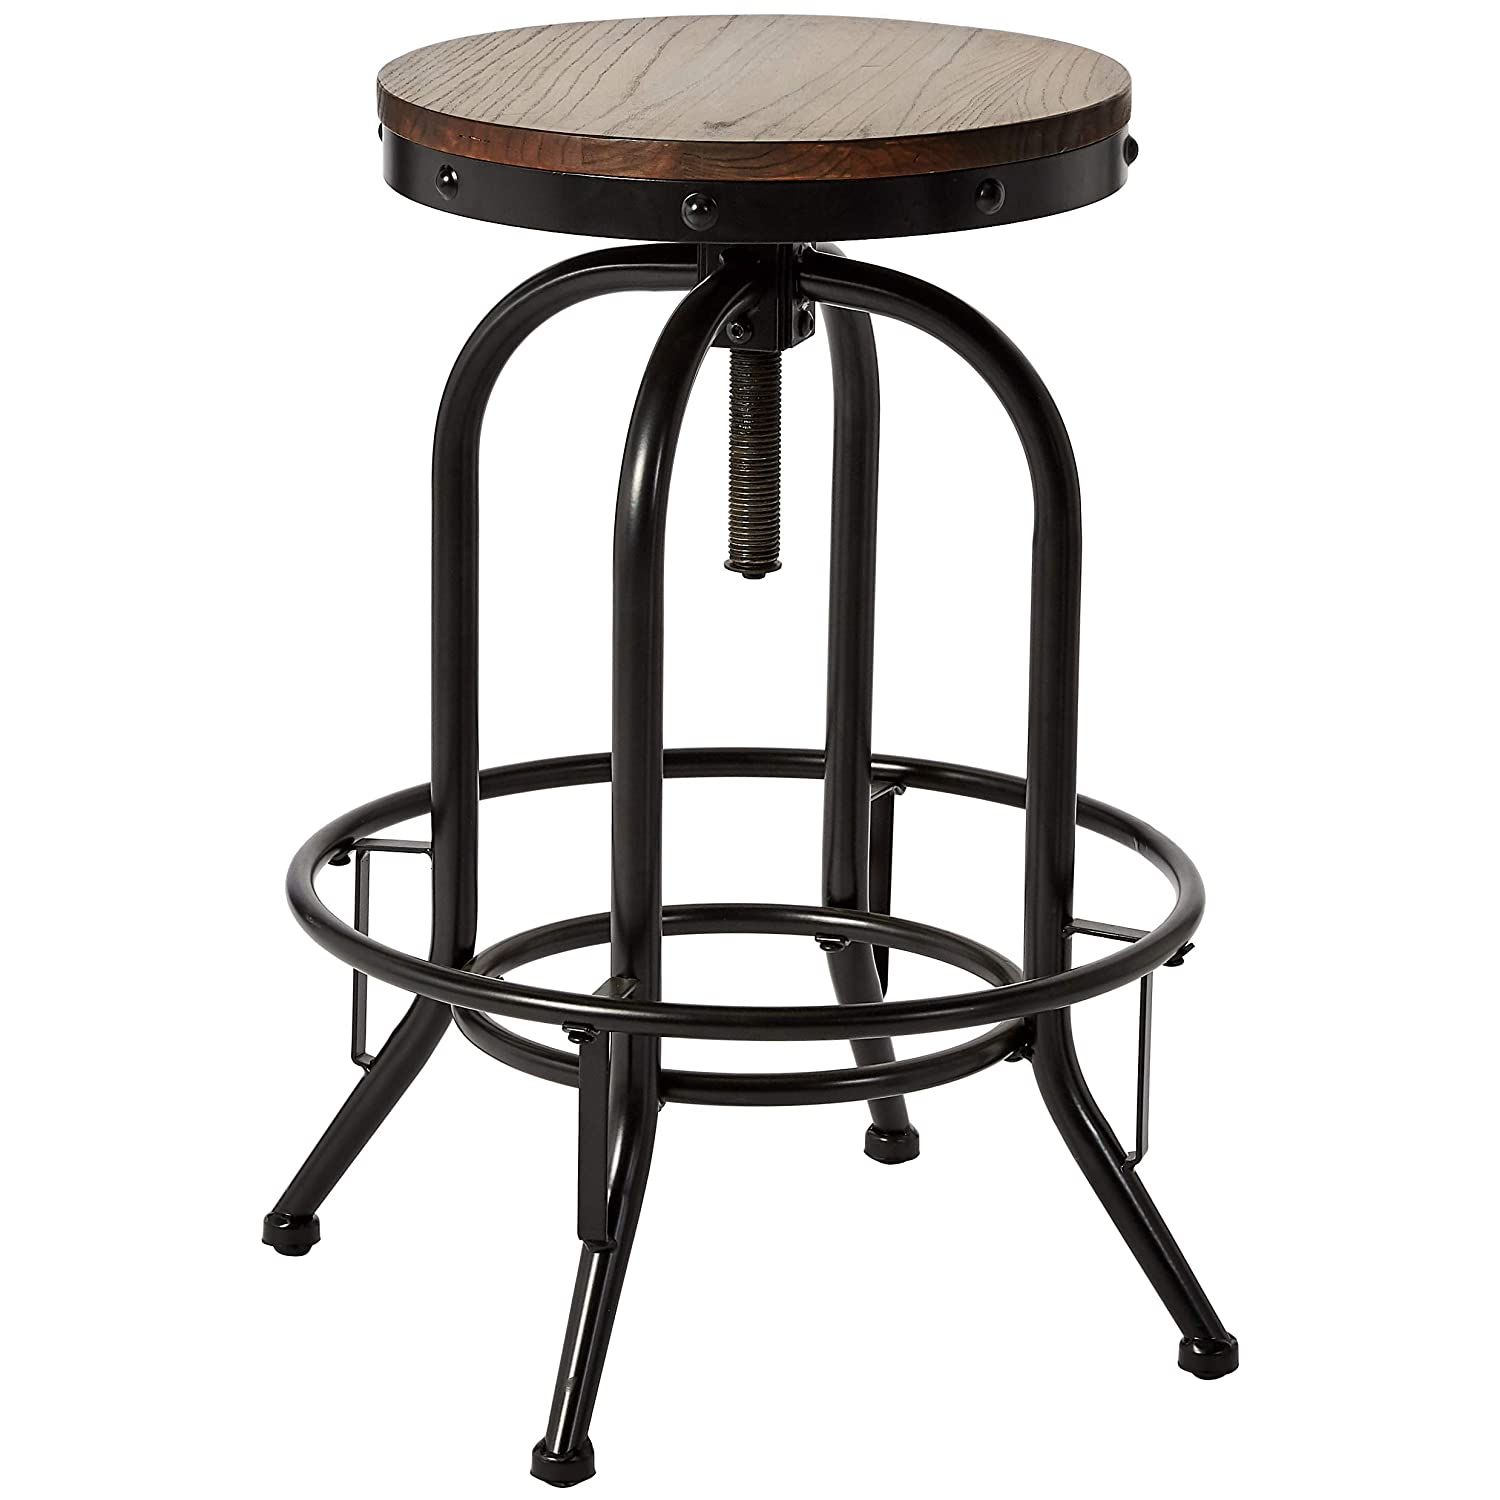 Super Pioneer Square Dane Metal And Wood Bar Height Swivel Bar Stool Set Of 2 Country Brown Dailytribune Chair Design For Home Dailytribuneorg